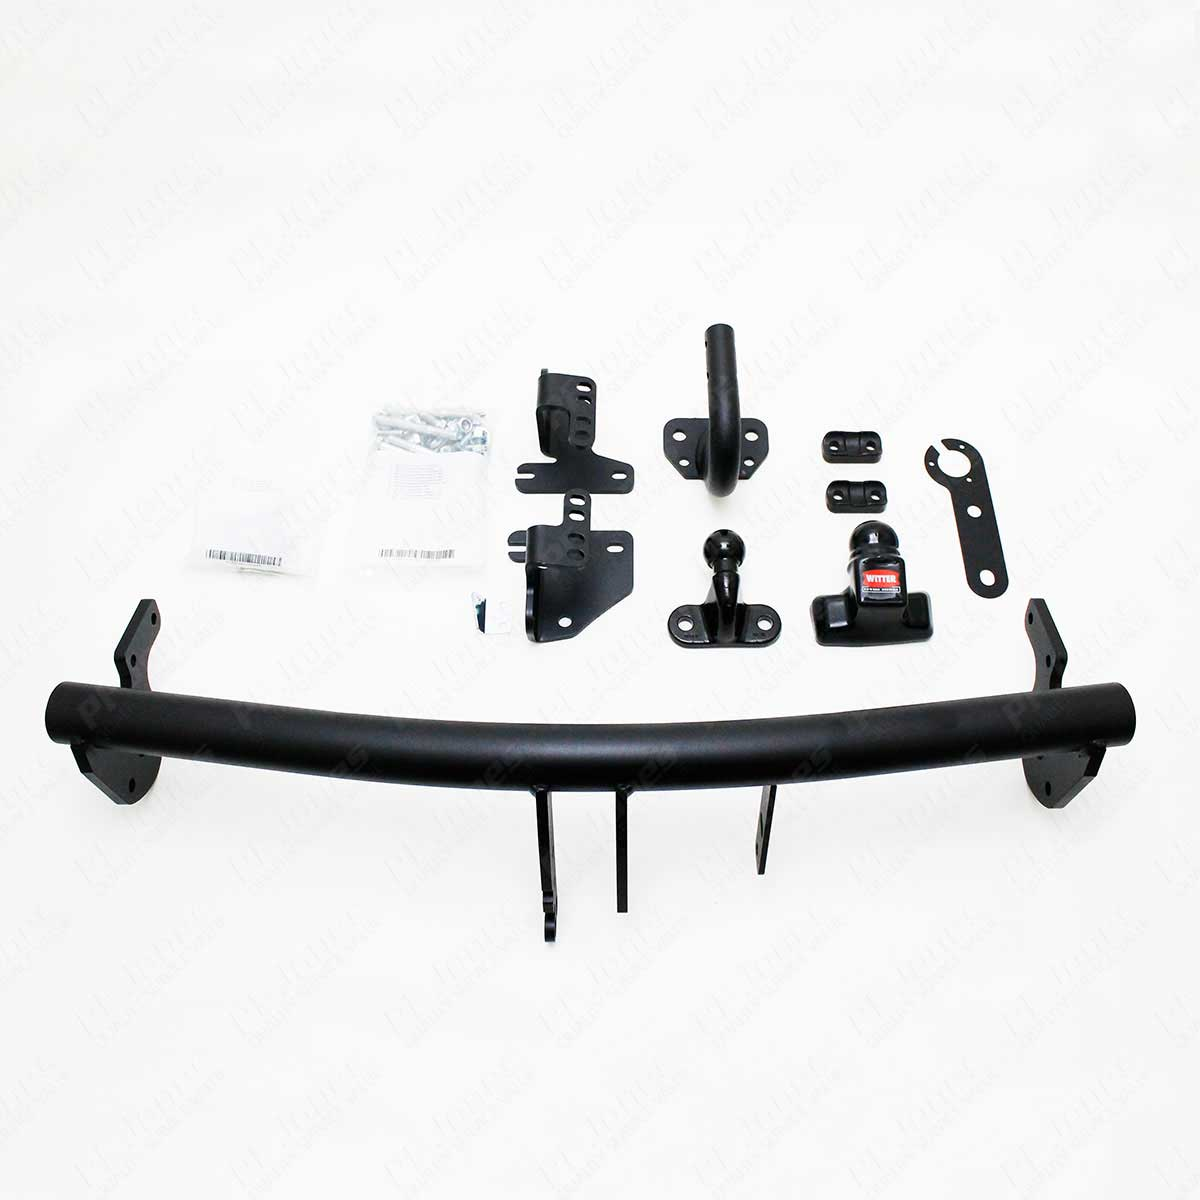 Mitsubishi outlander sep onwards witter flange tow bar